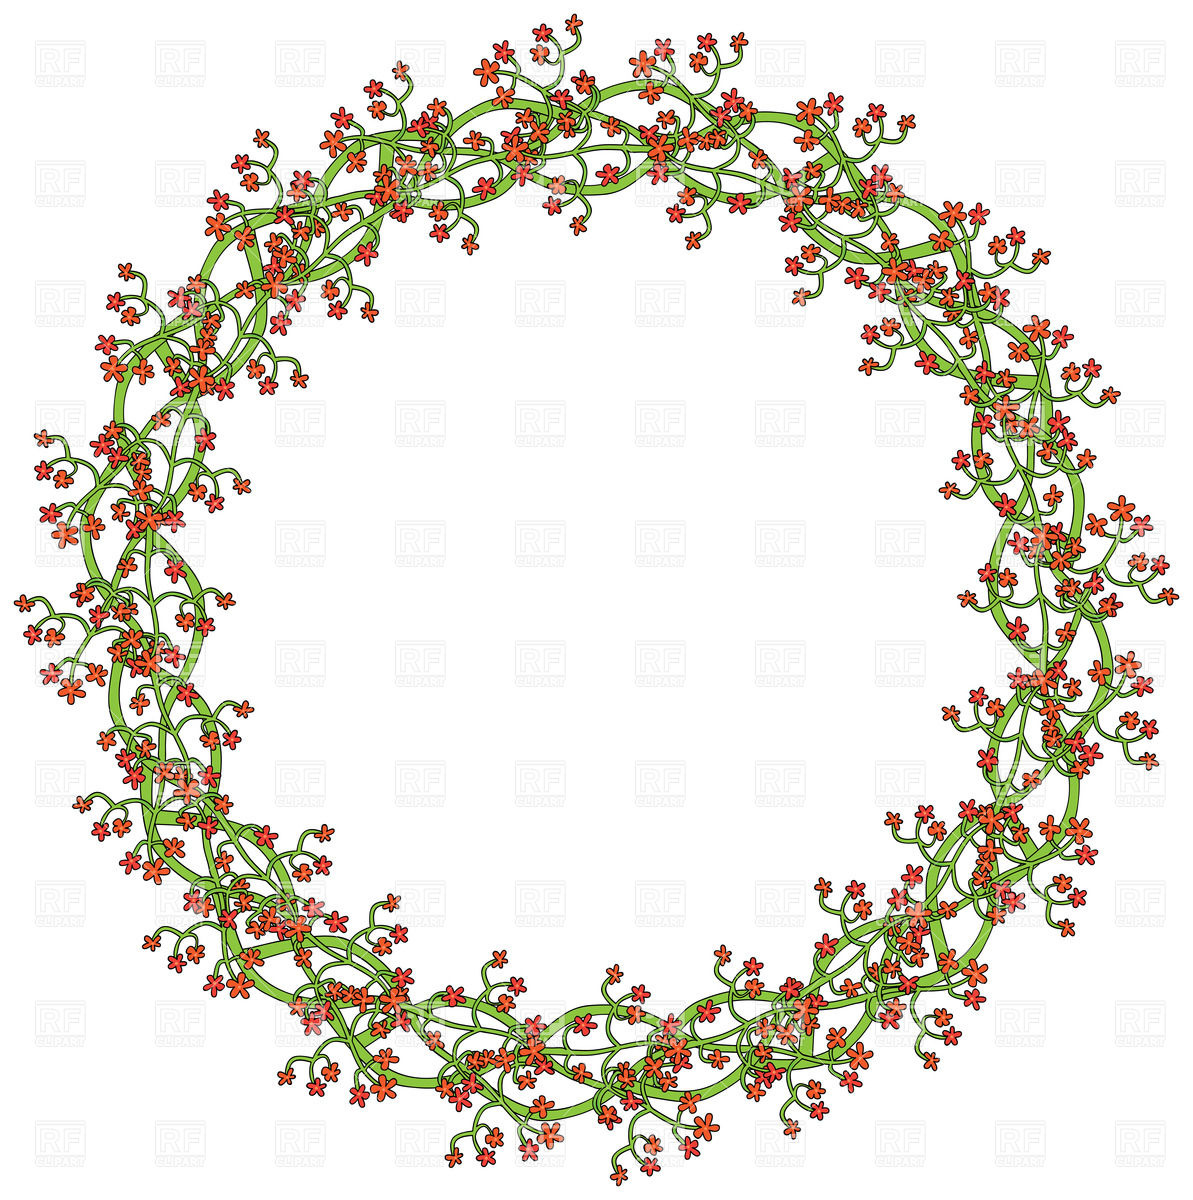 1193x1200 Wreath Made Of Little Red Flowers Vector Image Vector Artwork Of